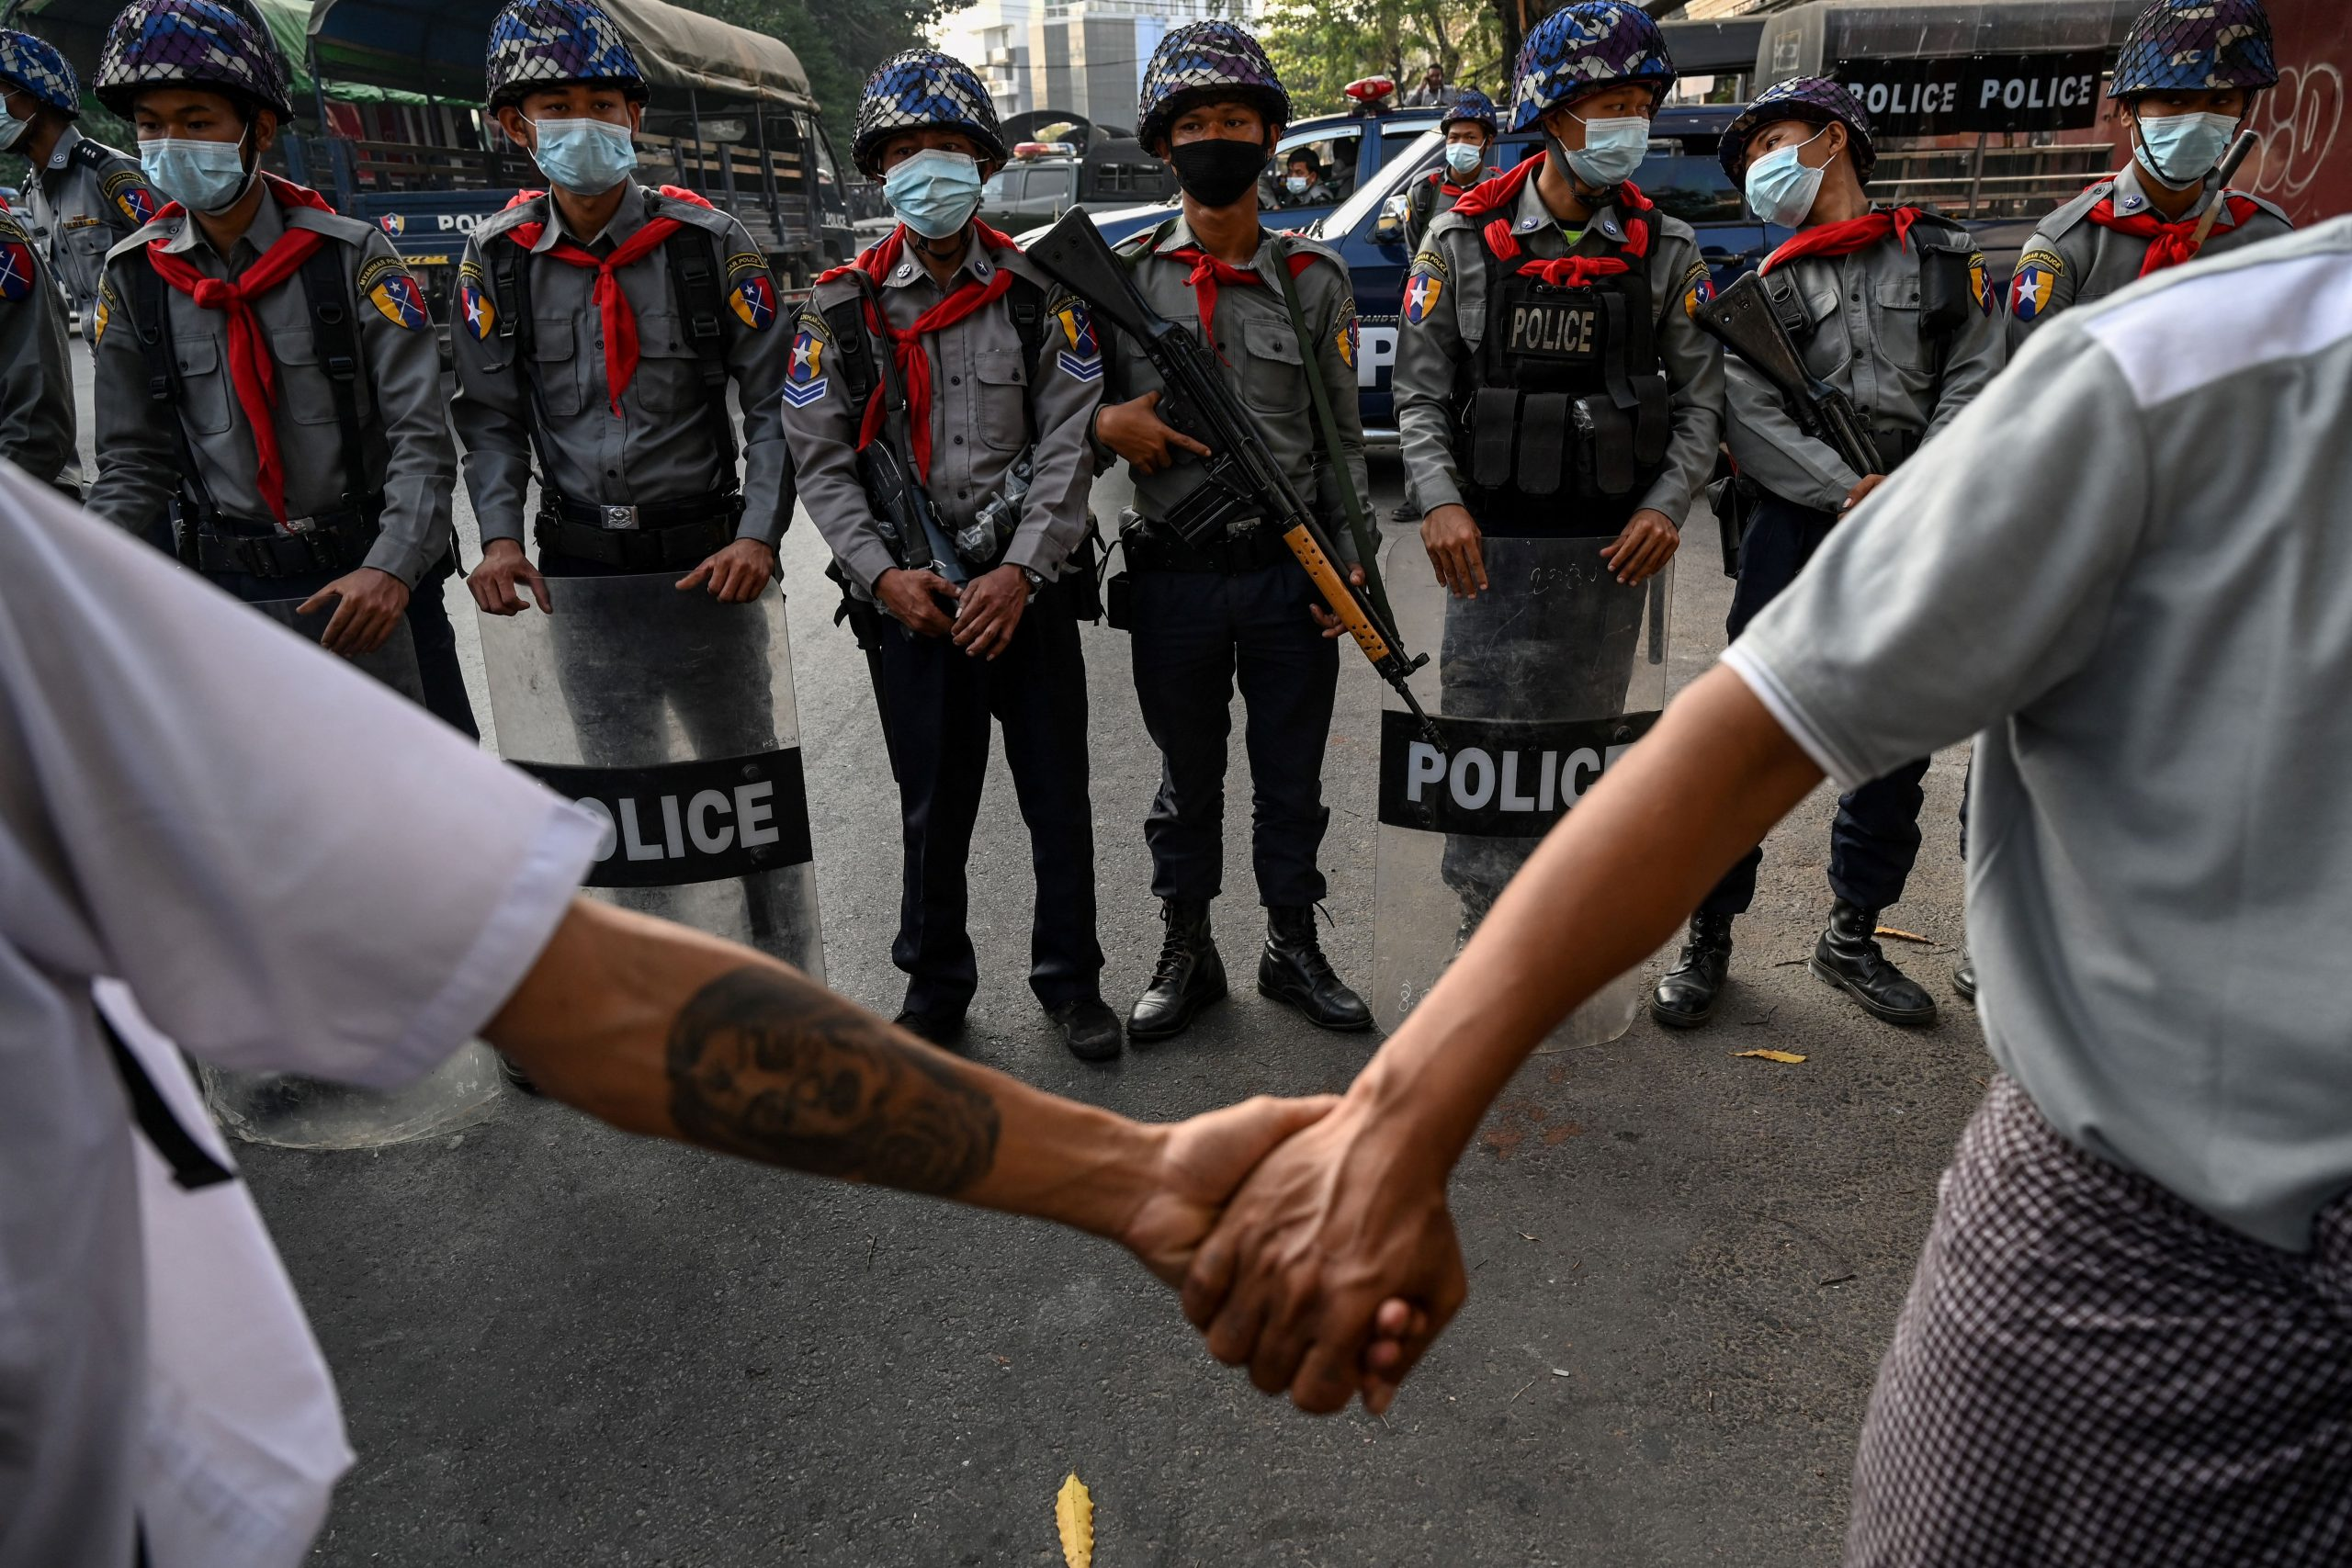 In this file photo taken on February 15, 2021 protesters hold hands to form a line in front of the police during a demonstration at the headquarters of the National League for Democracy (NLD) in Yangon. - With bars shuttered, universities empty and hook-up apps poleaxed by internet blackouts, dating got much harder in post-coup Myanmar, but young people are still finding love -- often in the heady rush of anti-junta protests. (Photo by STR / AFP)